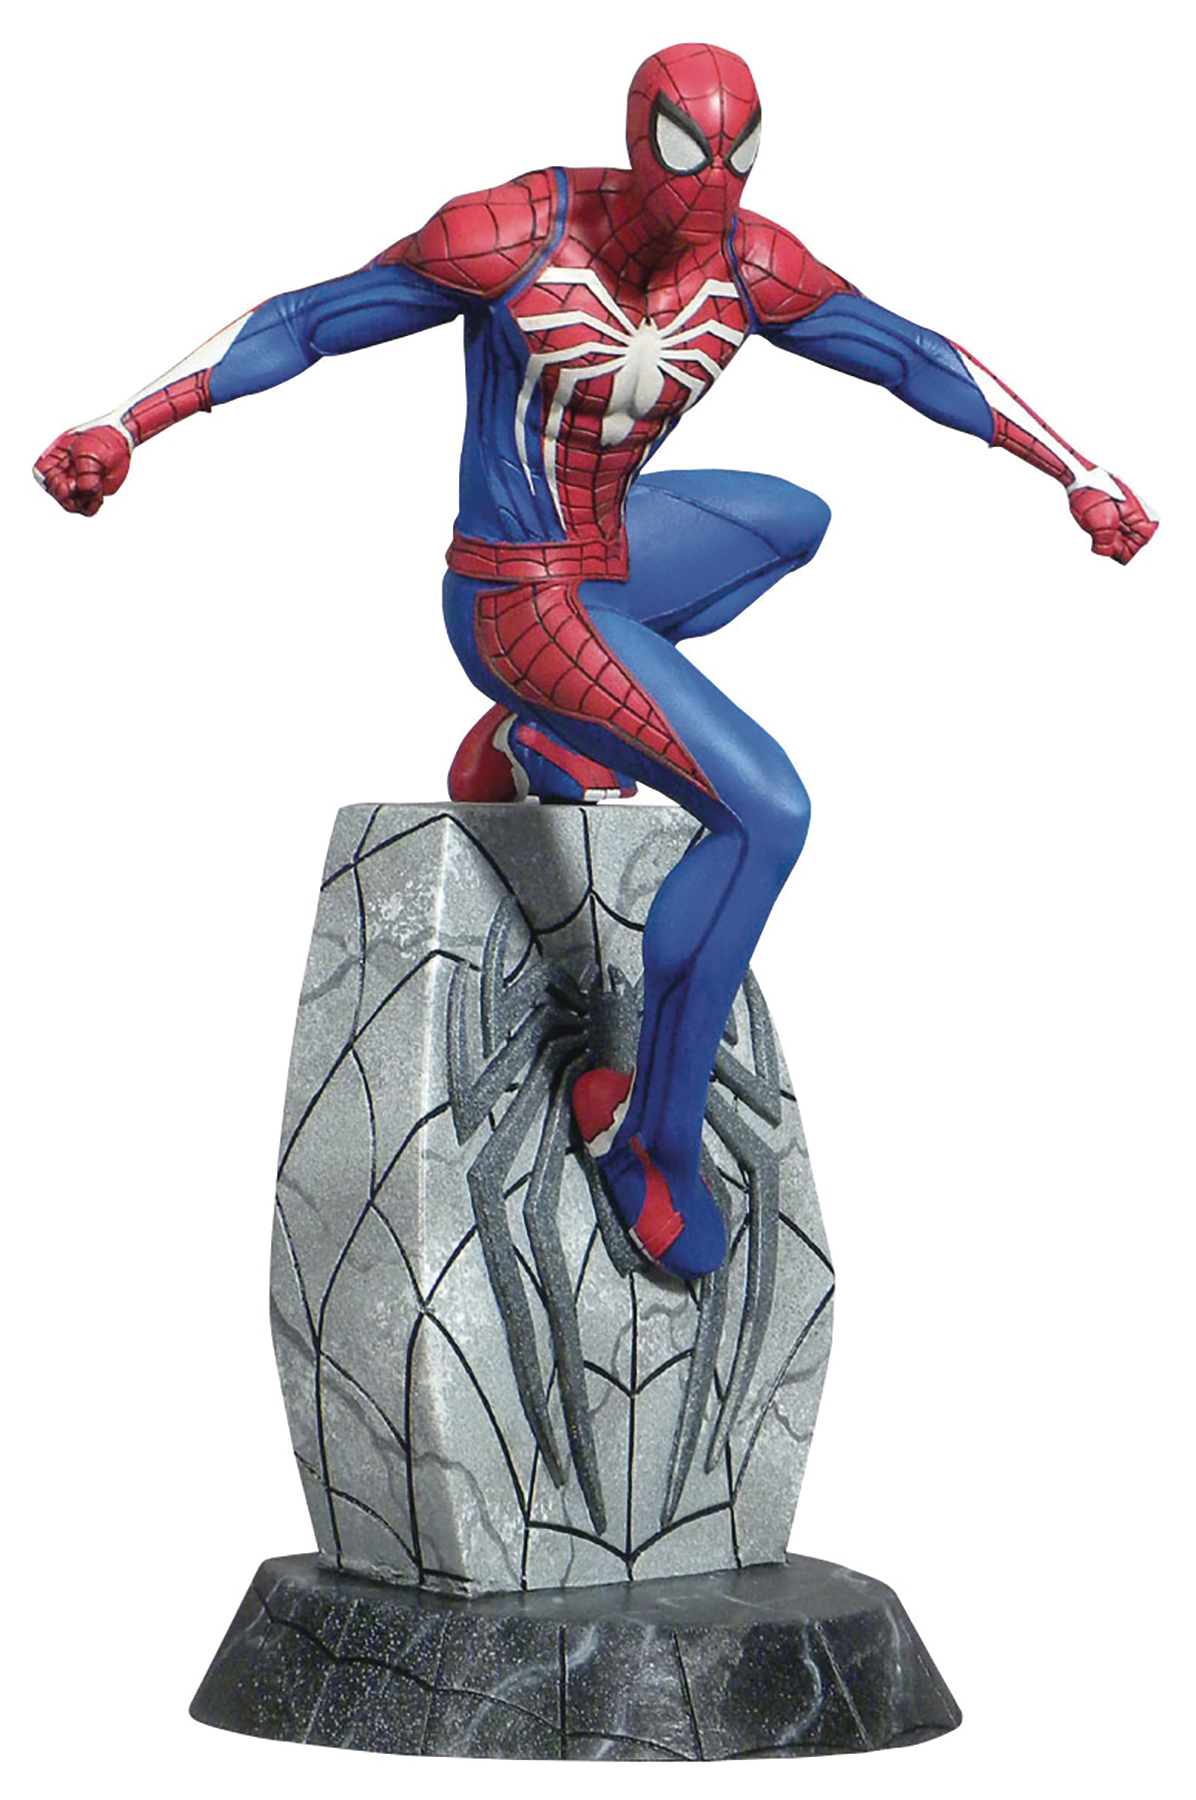 JAN192552 - MARVEL GALLERY SPIDER-MAN PS4 PVC FIGURE - Previews World